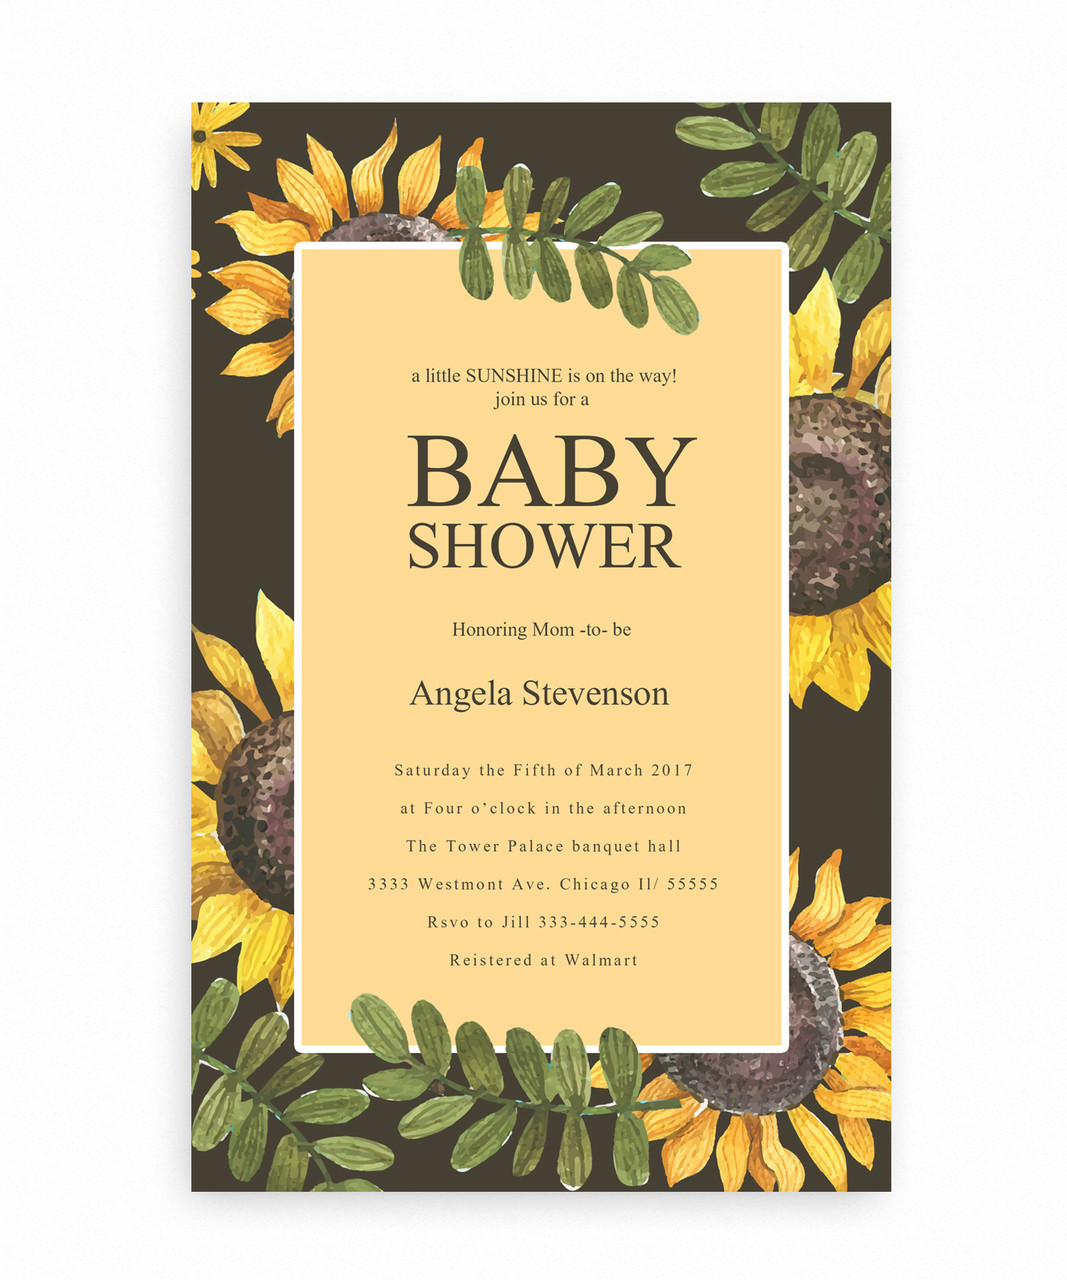 Sunflower baby shower invitation sunflower baby shower invitation sunshine baby shower invitation little sunflower cute sunflowers filmwisefo